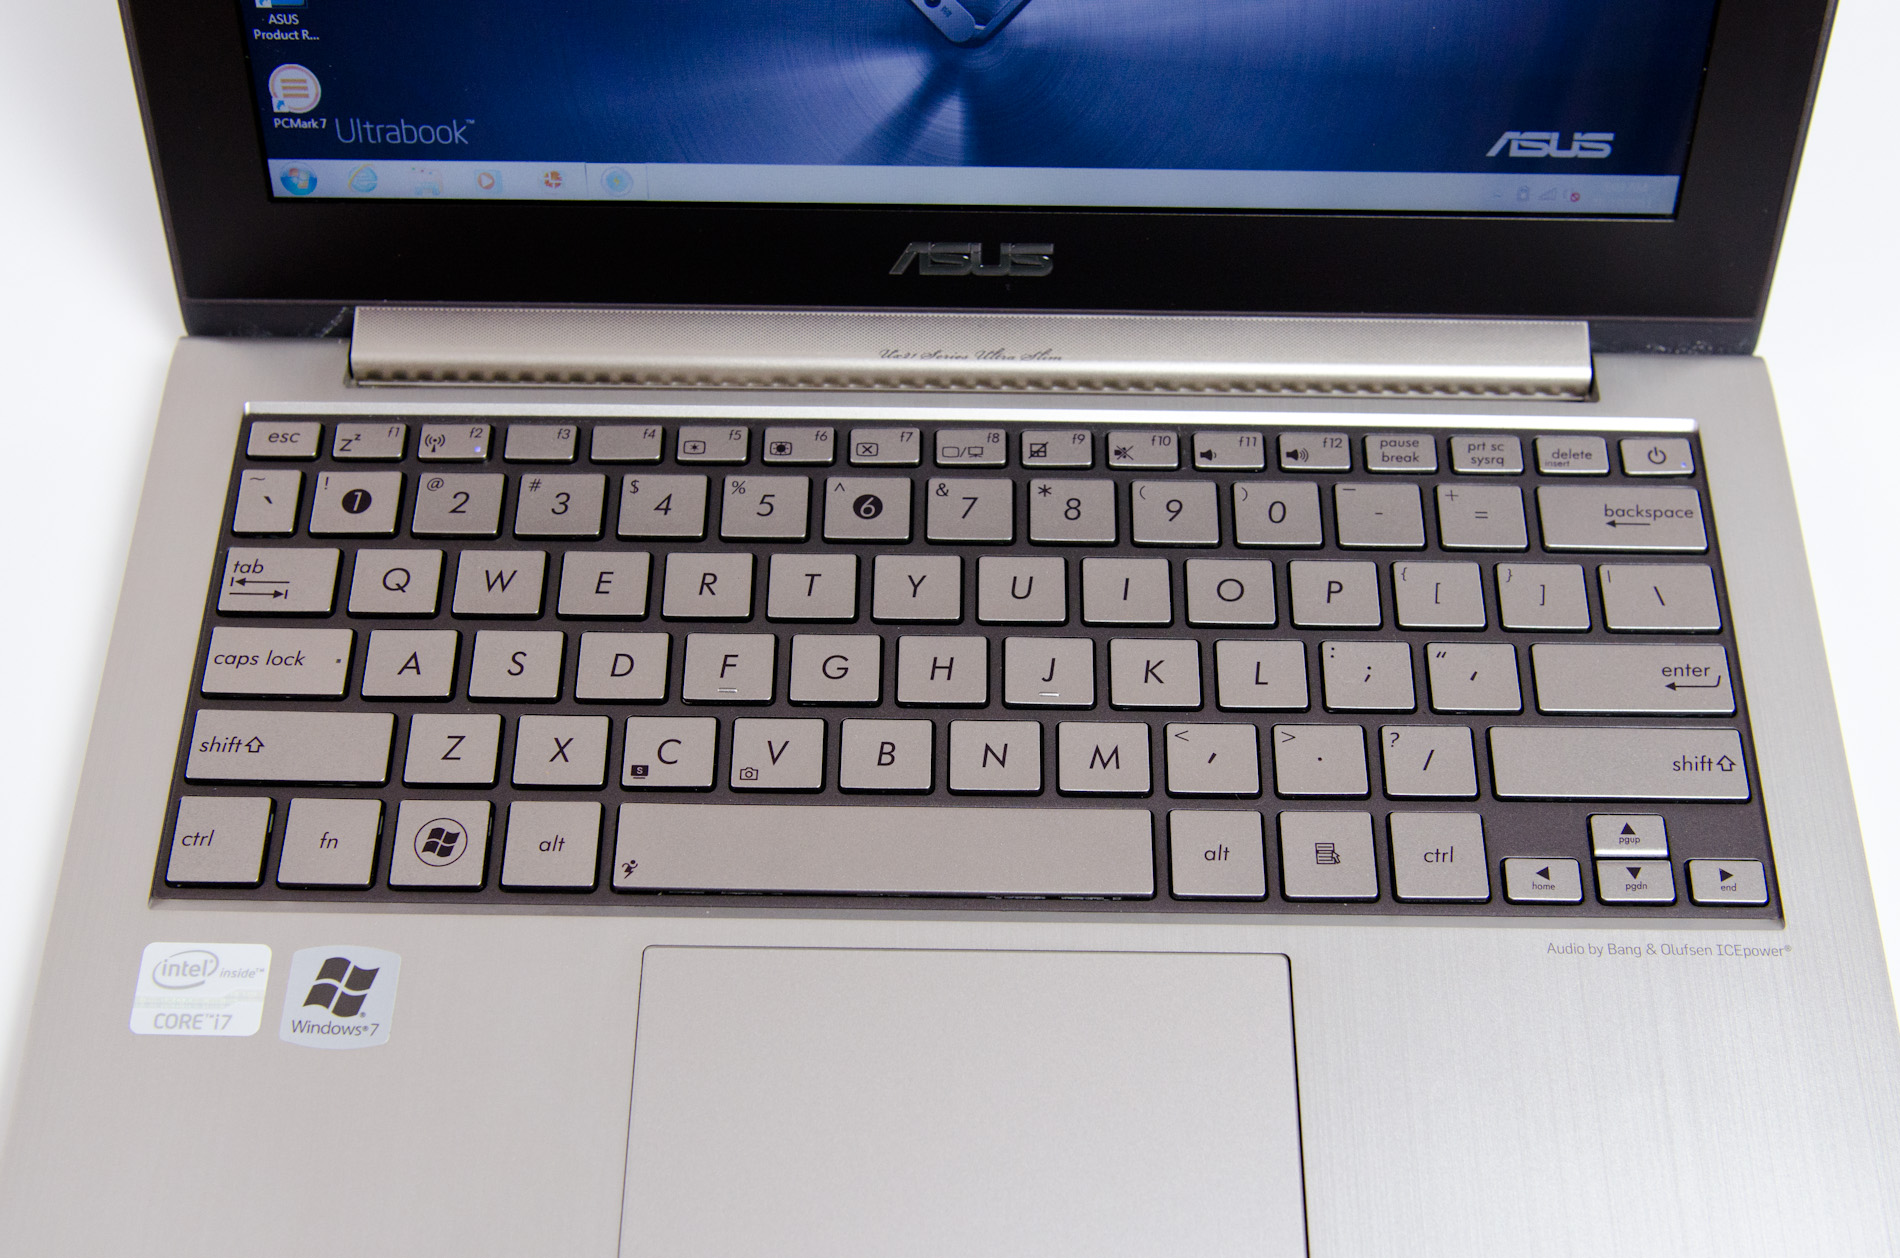 Asus Zenbook UX31E Intel Rapid Storage Technology Windows Vista 32-BIT